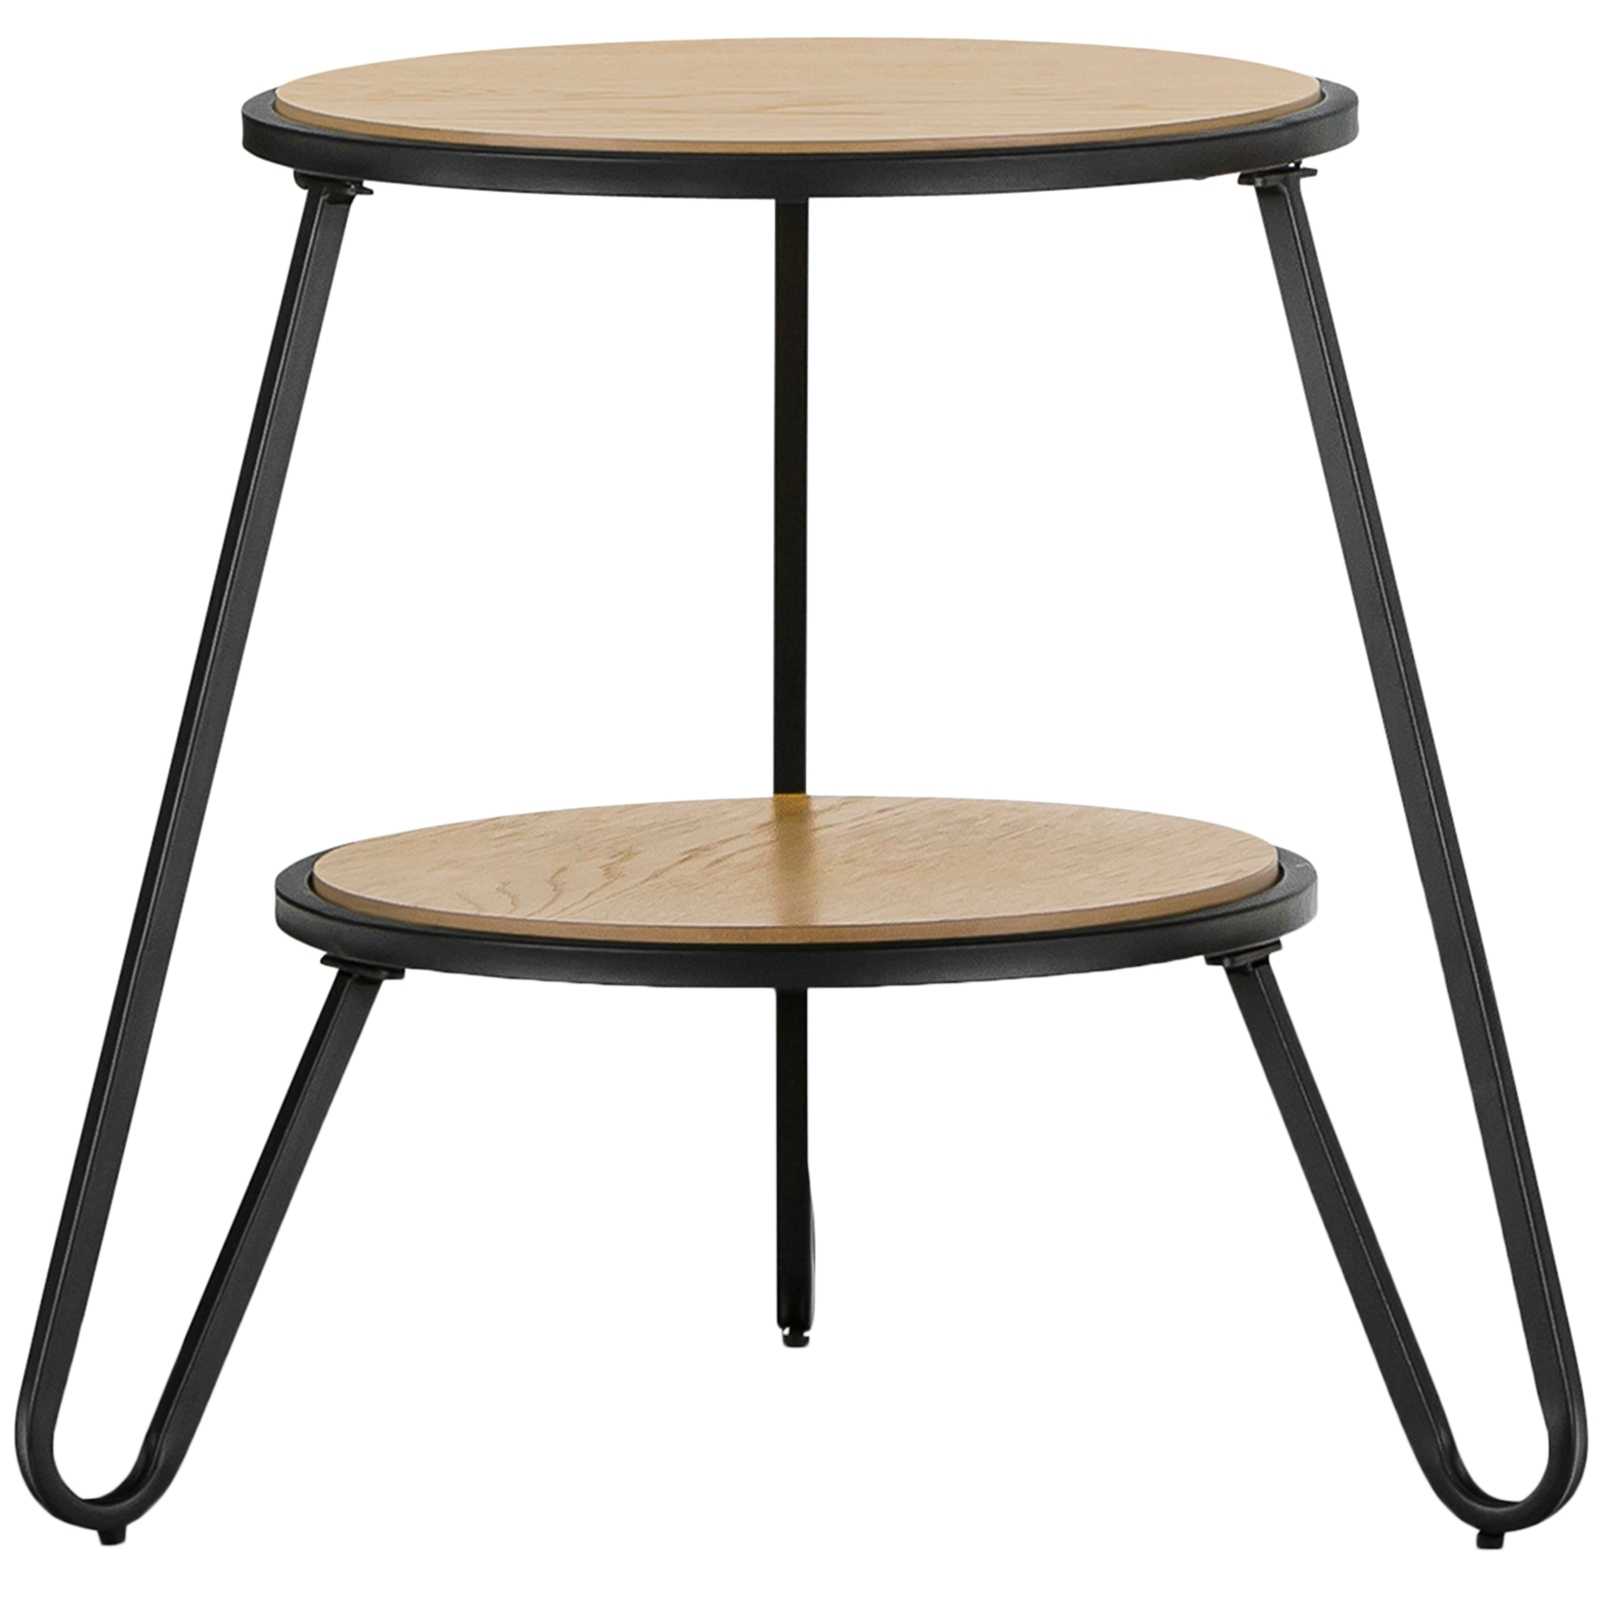 Black Macy Round Side Table | Temple & Webster With Recent Macie Round Dining Tables (View 18 of 20)